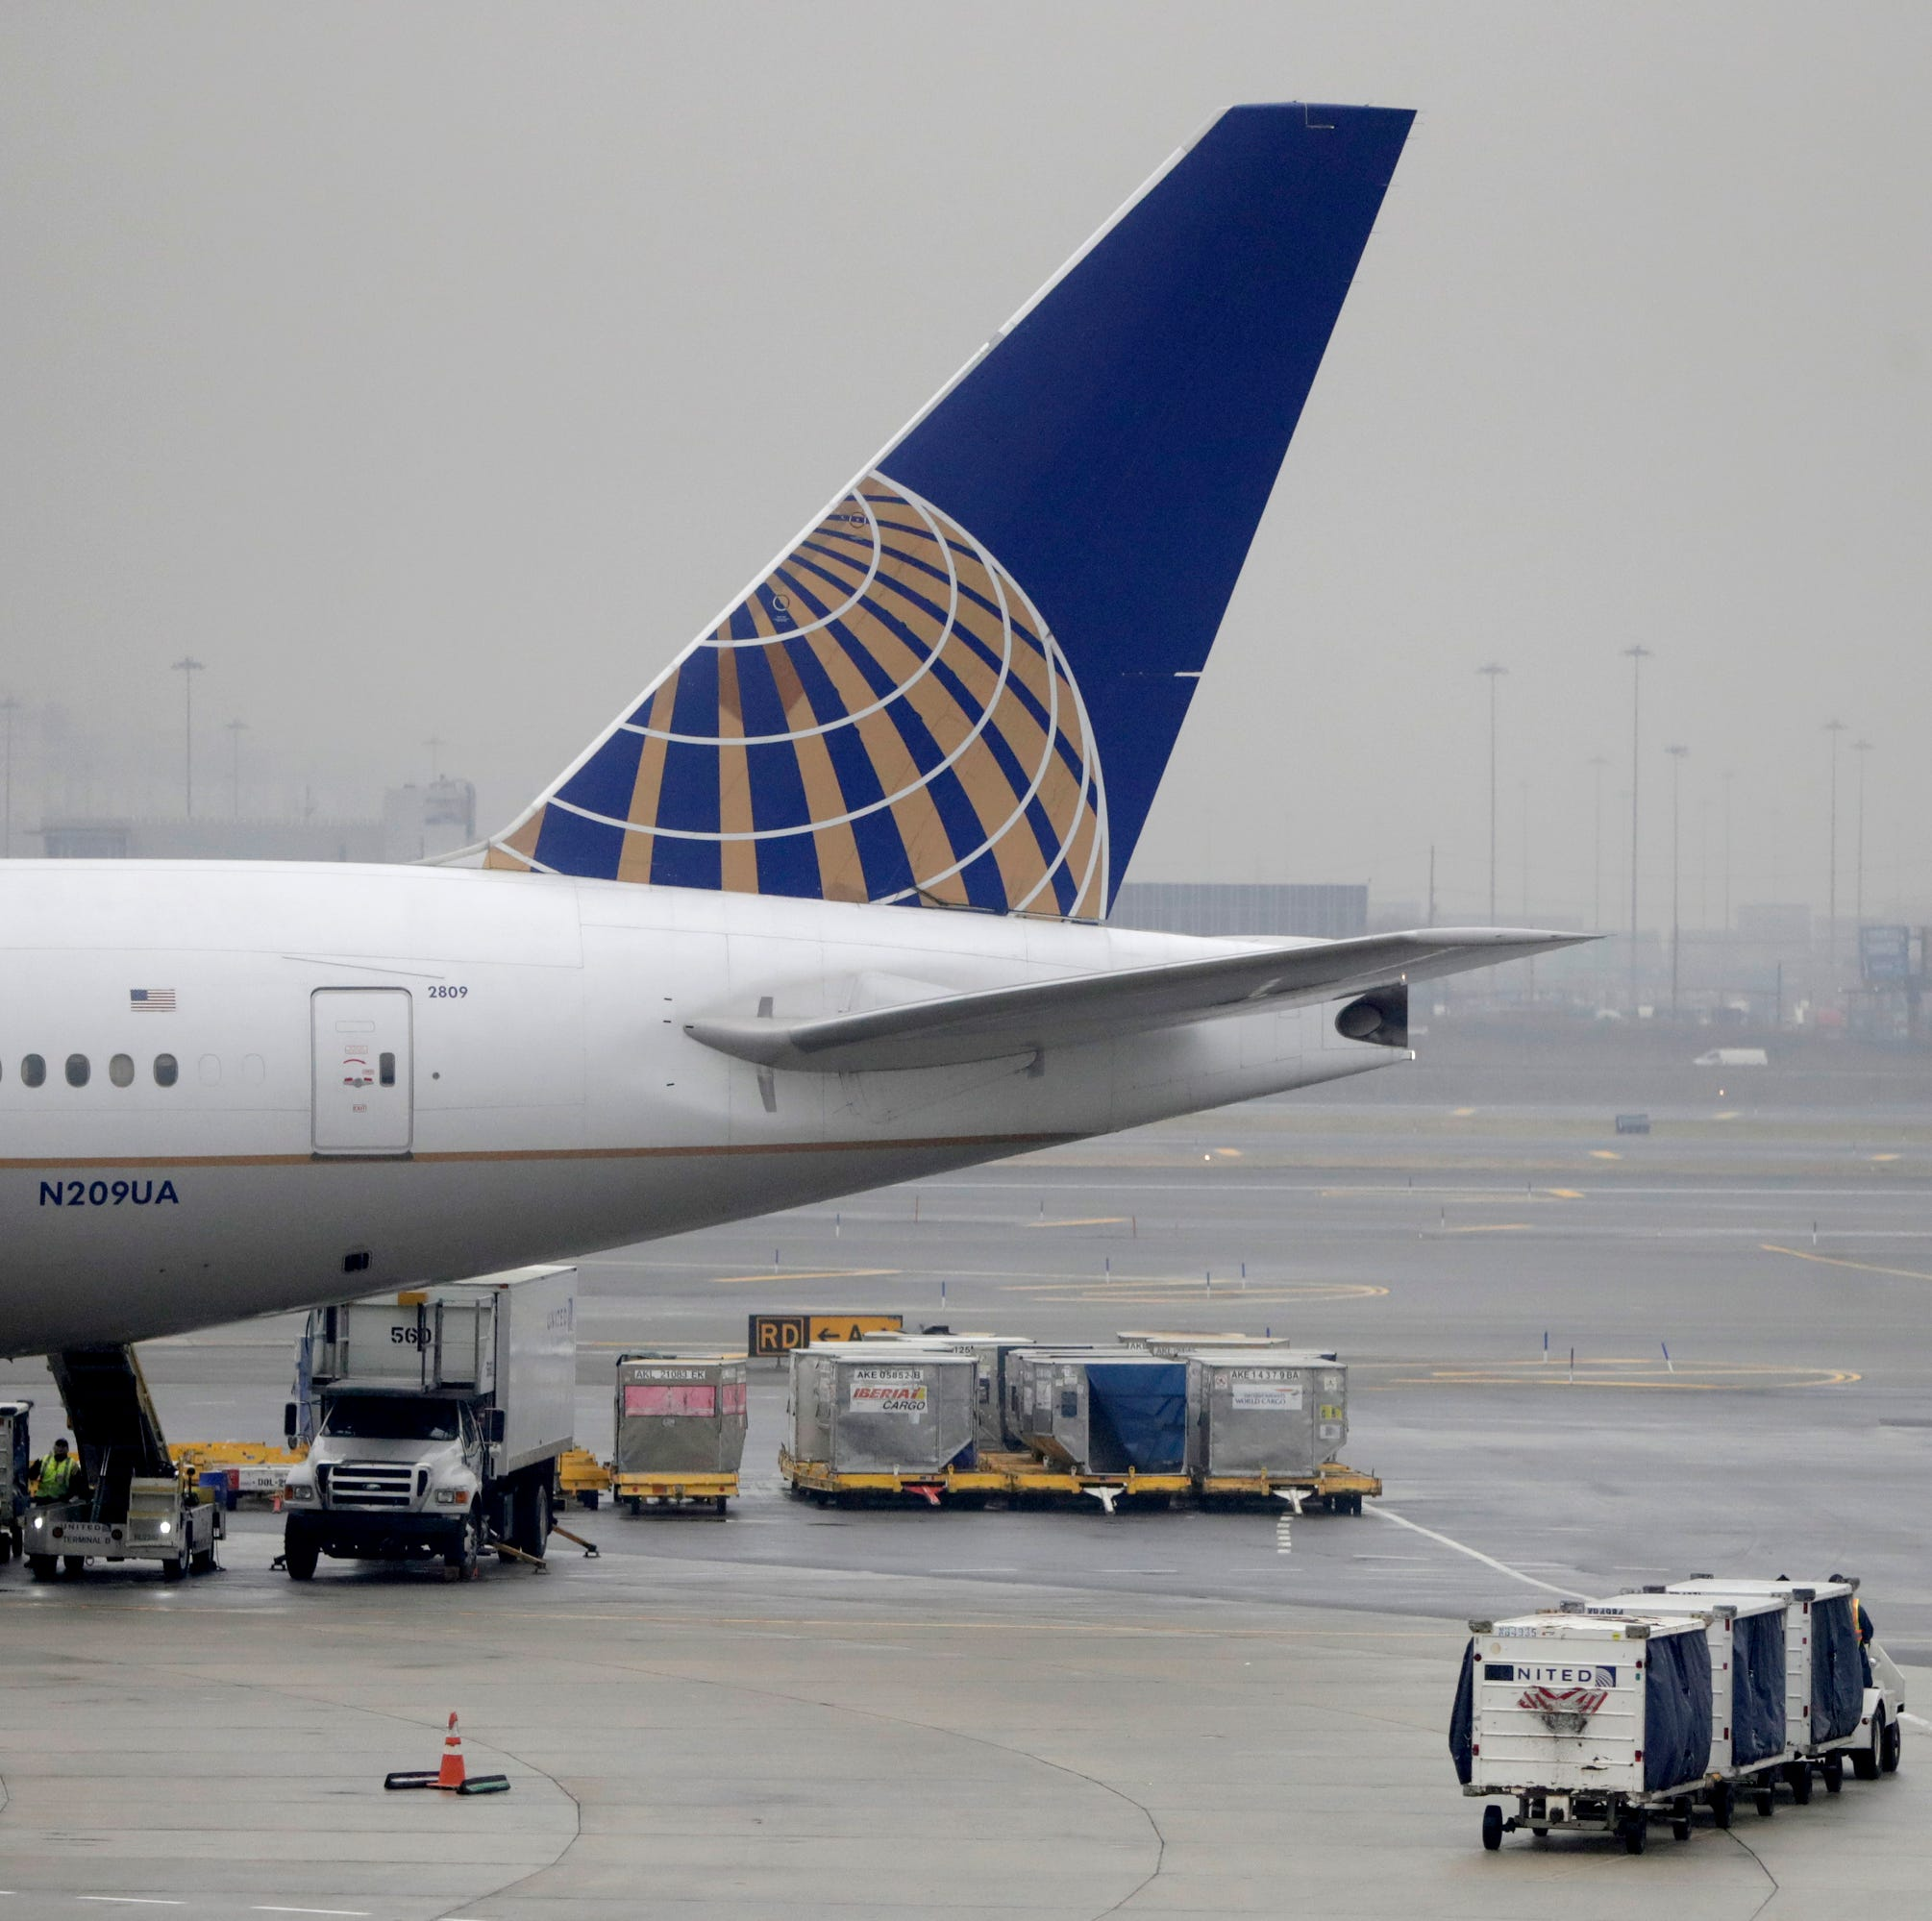 A luggage cart rolls near a United Airlines jet at Newark Liberty International Airport, Tuesday, in Newark, New Jersey. A flight leaving the airport over the weekend made an emergency stop in Canada, stranding passengers for hours.